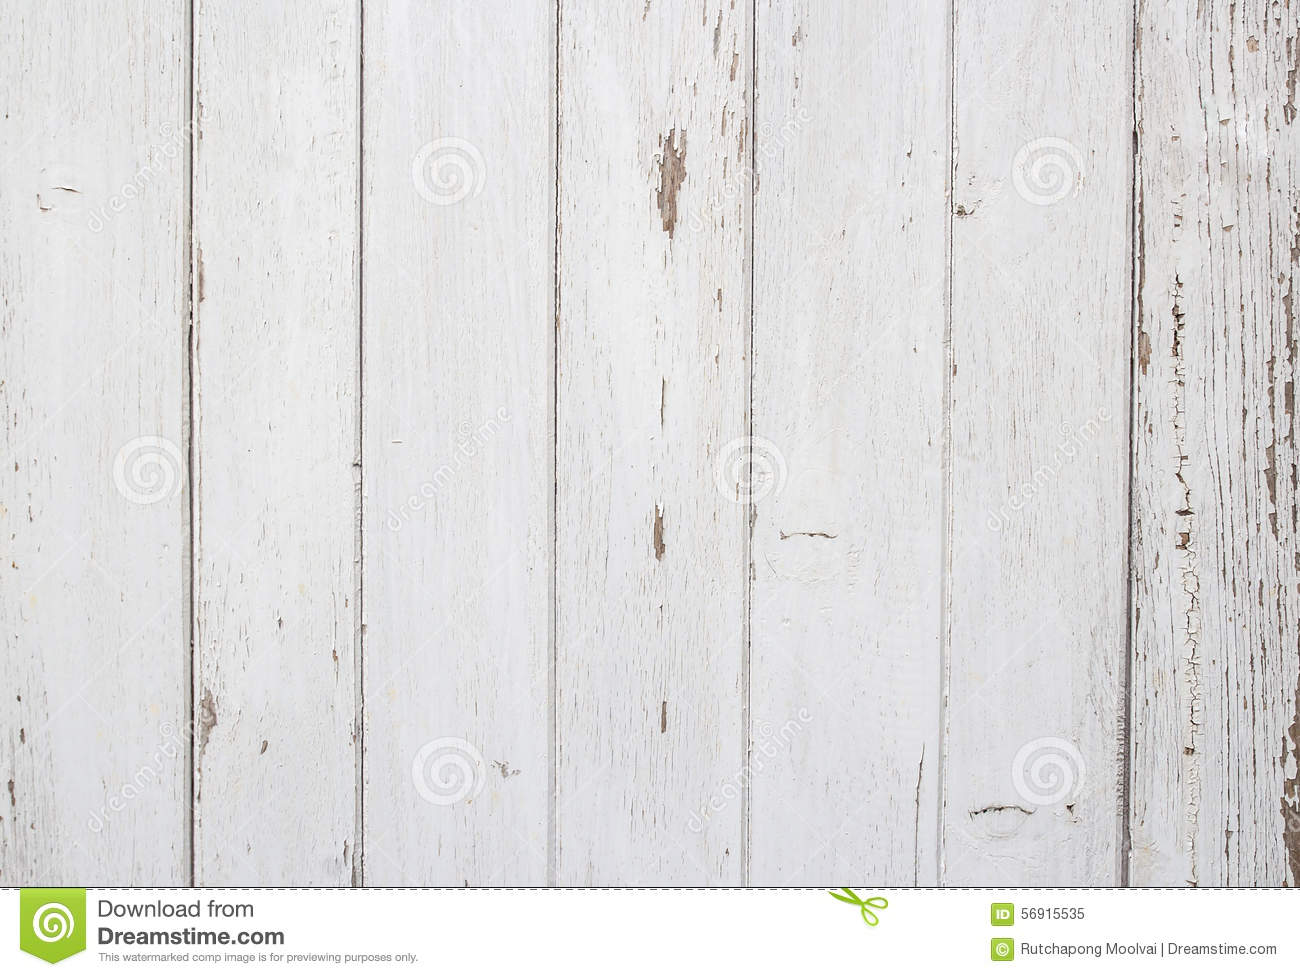 High Resolution White Wood Backgrounds Stock Photo - Image: 56915535